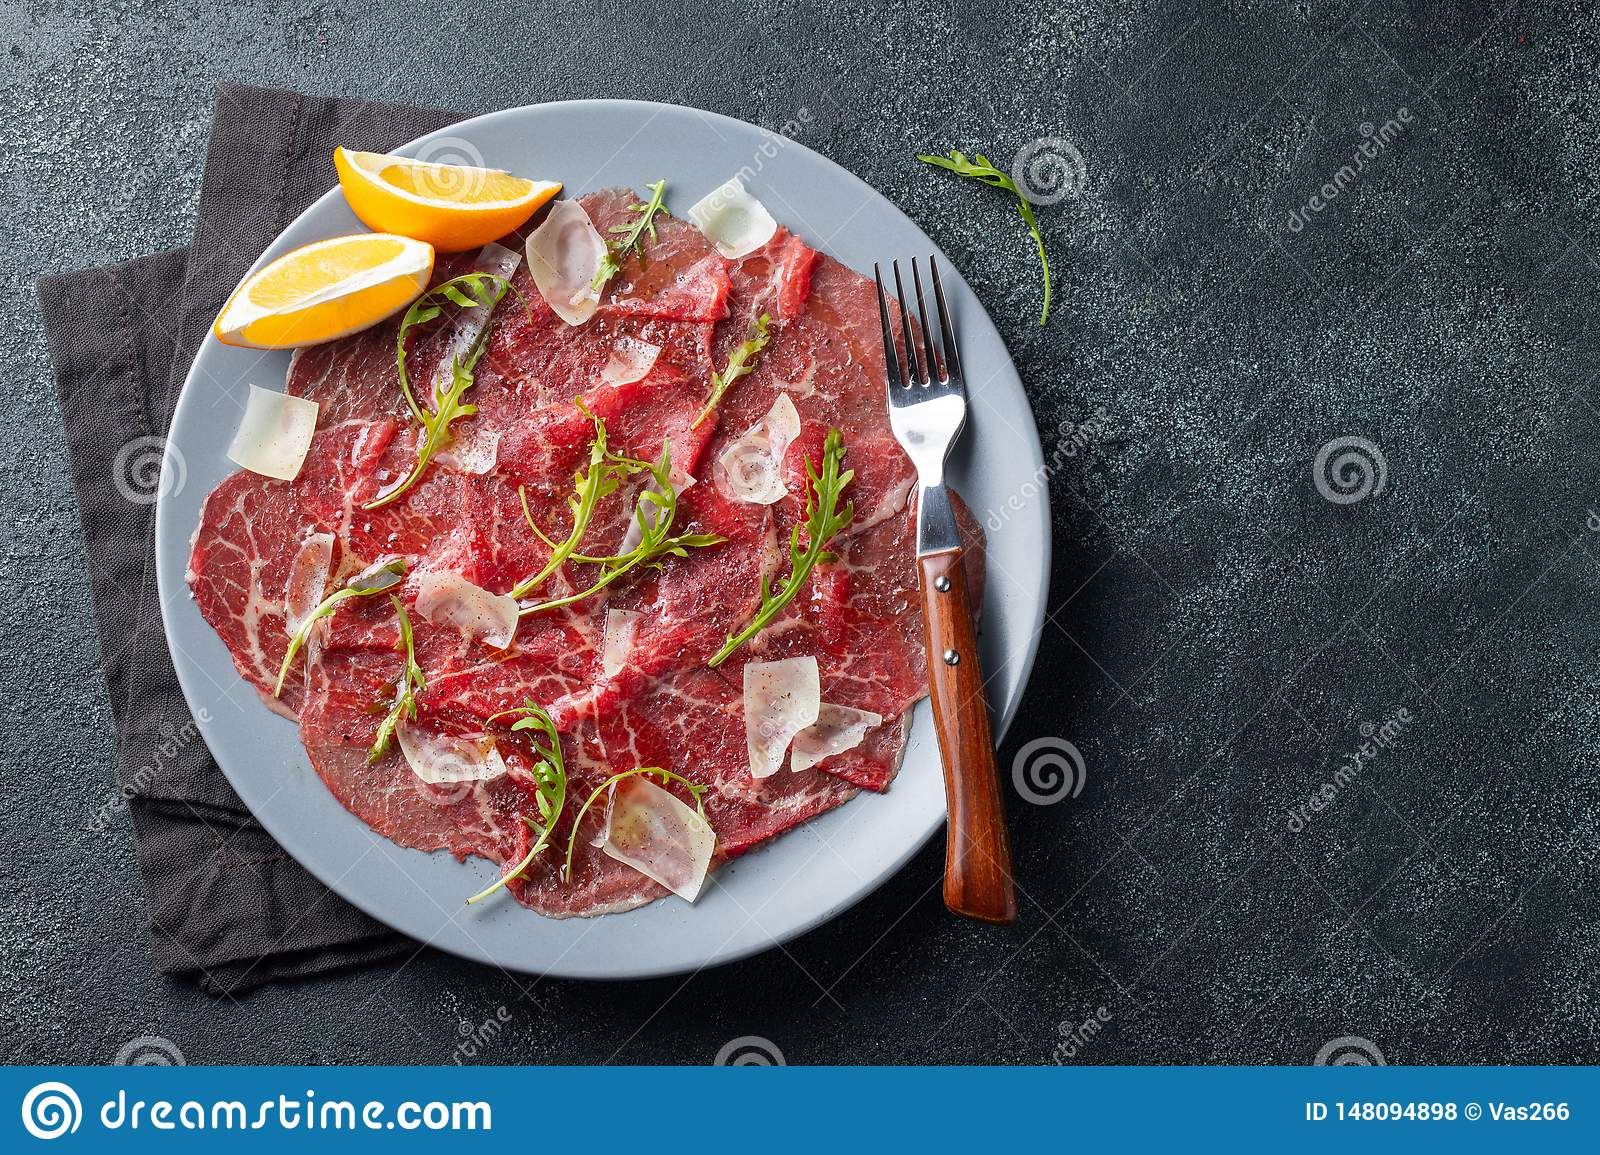 Marbled beef carpaccio with arugula, lemon and parmesan cheese on dark concrete table. Top view, flat lay with copy